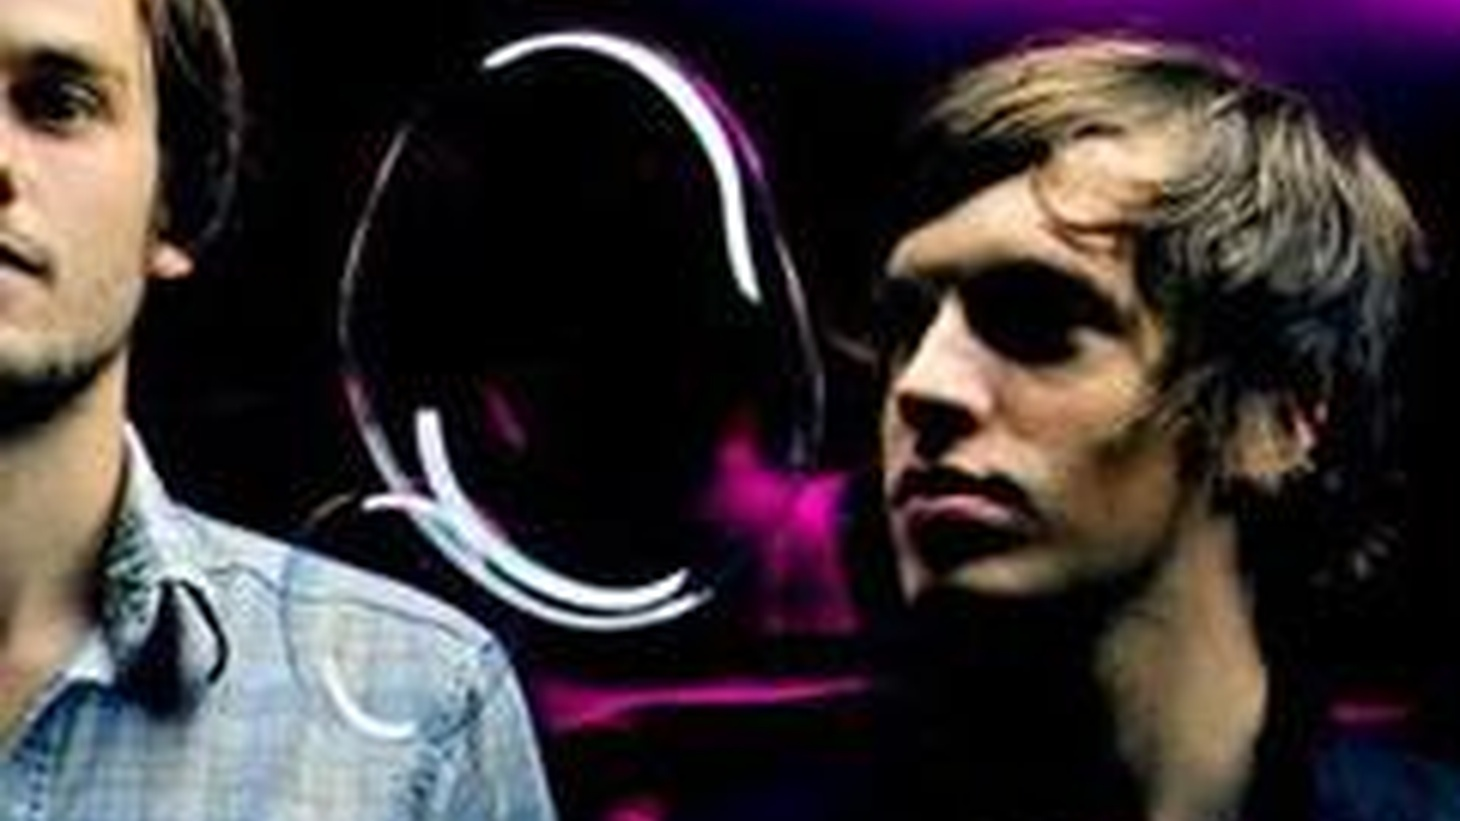 Friendly Fires set the studios ablaze with their high energy dance mix on Morning Becomes Eclectic at 11:15am.